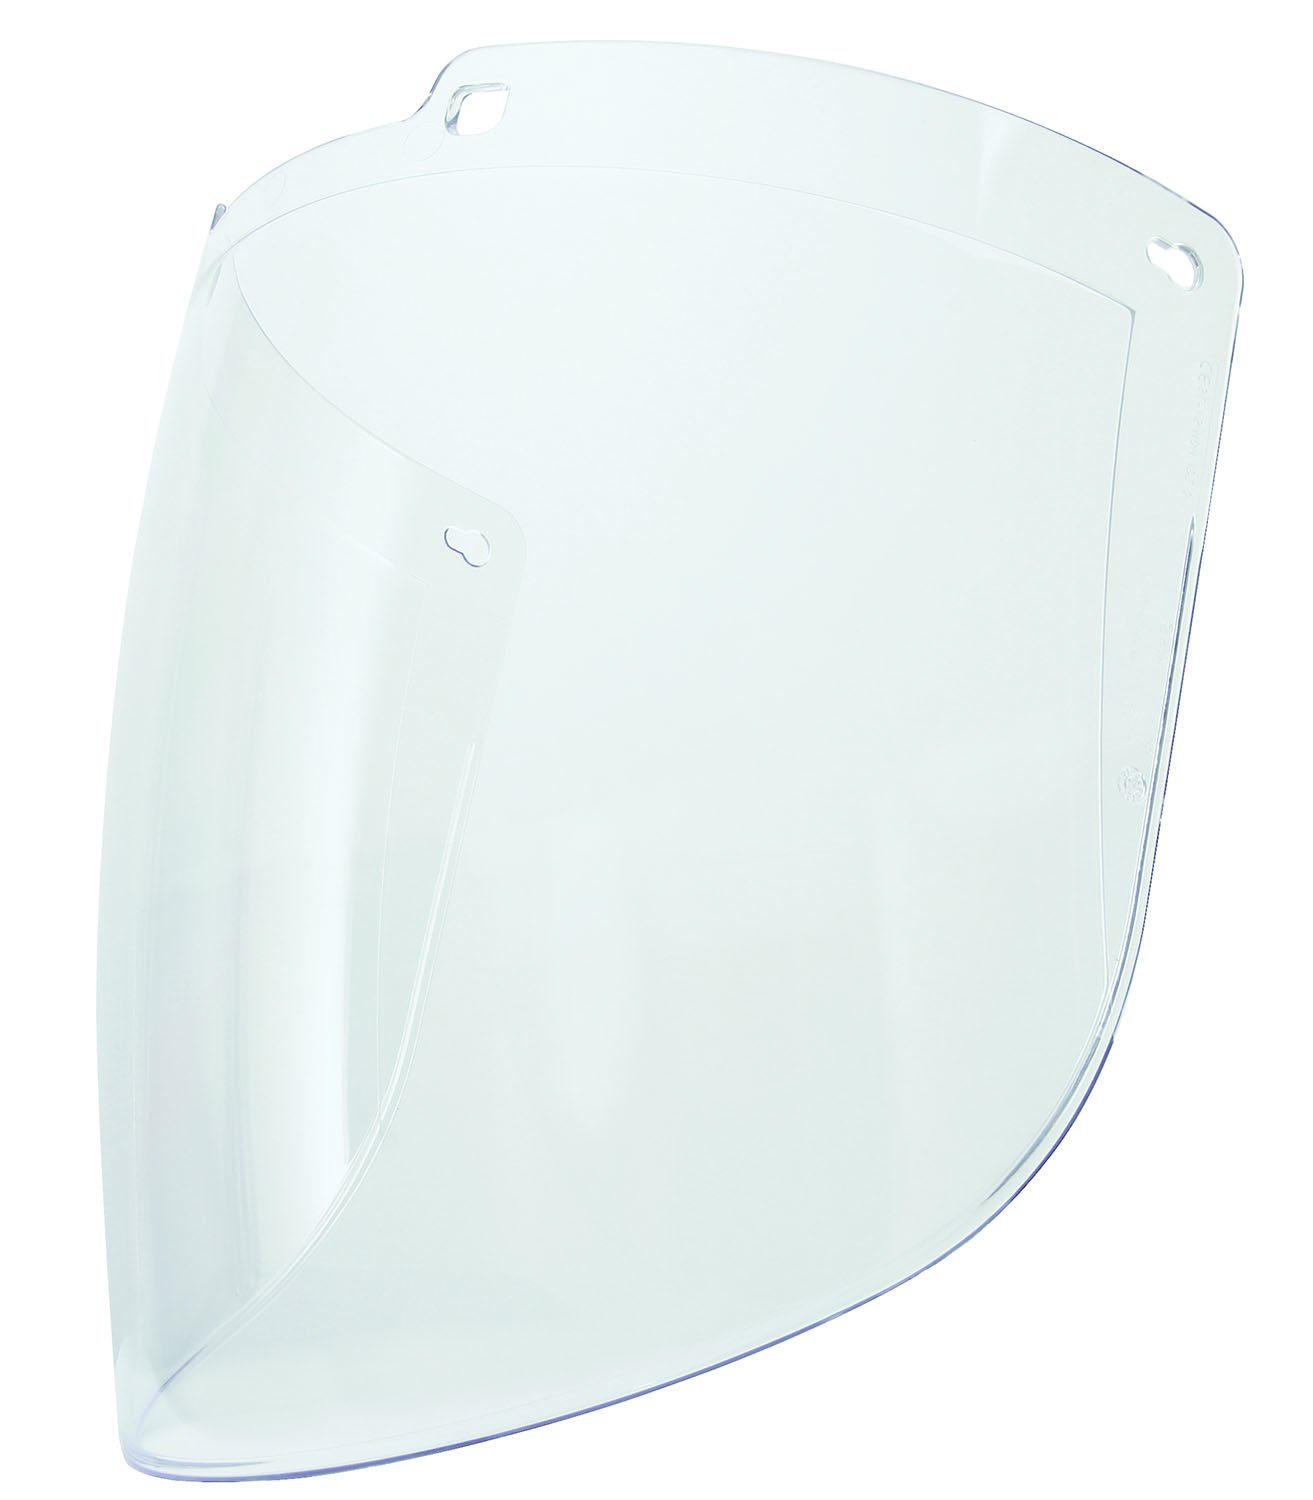 UVEX by Honeywell S9555 Uvex Turboshield Clear Polycarbonate Replacement Visor and Clear Lens with Dual Anti-Scratch/Anti-Fog Lens Coating by Honeywell